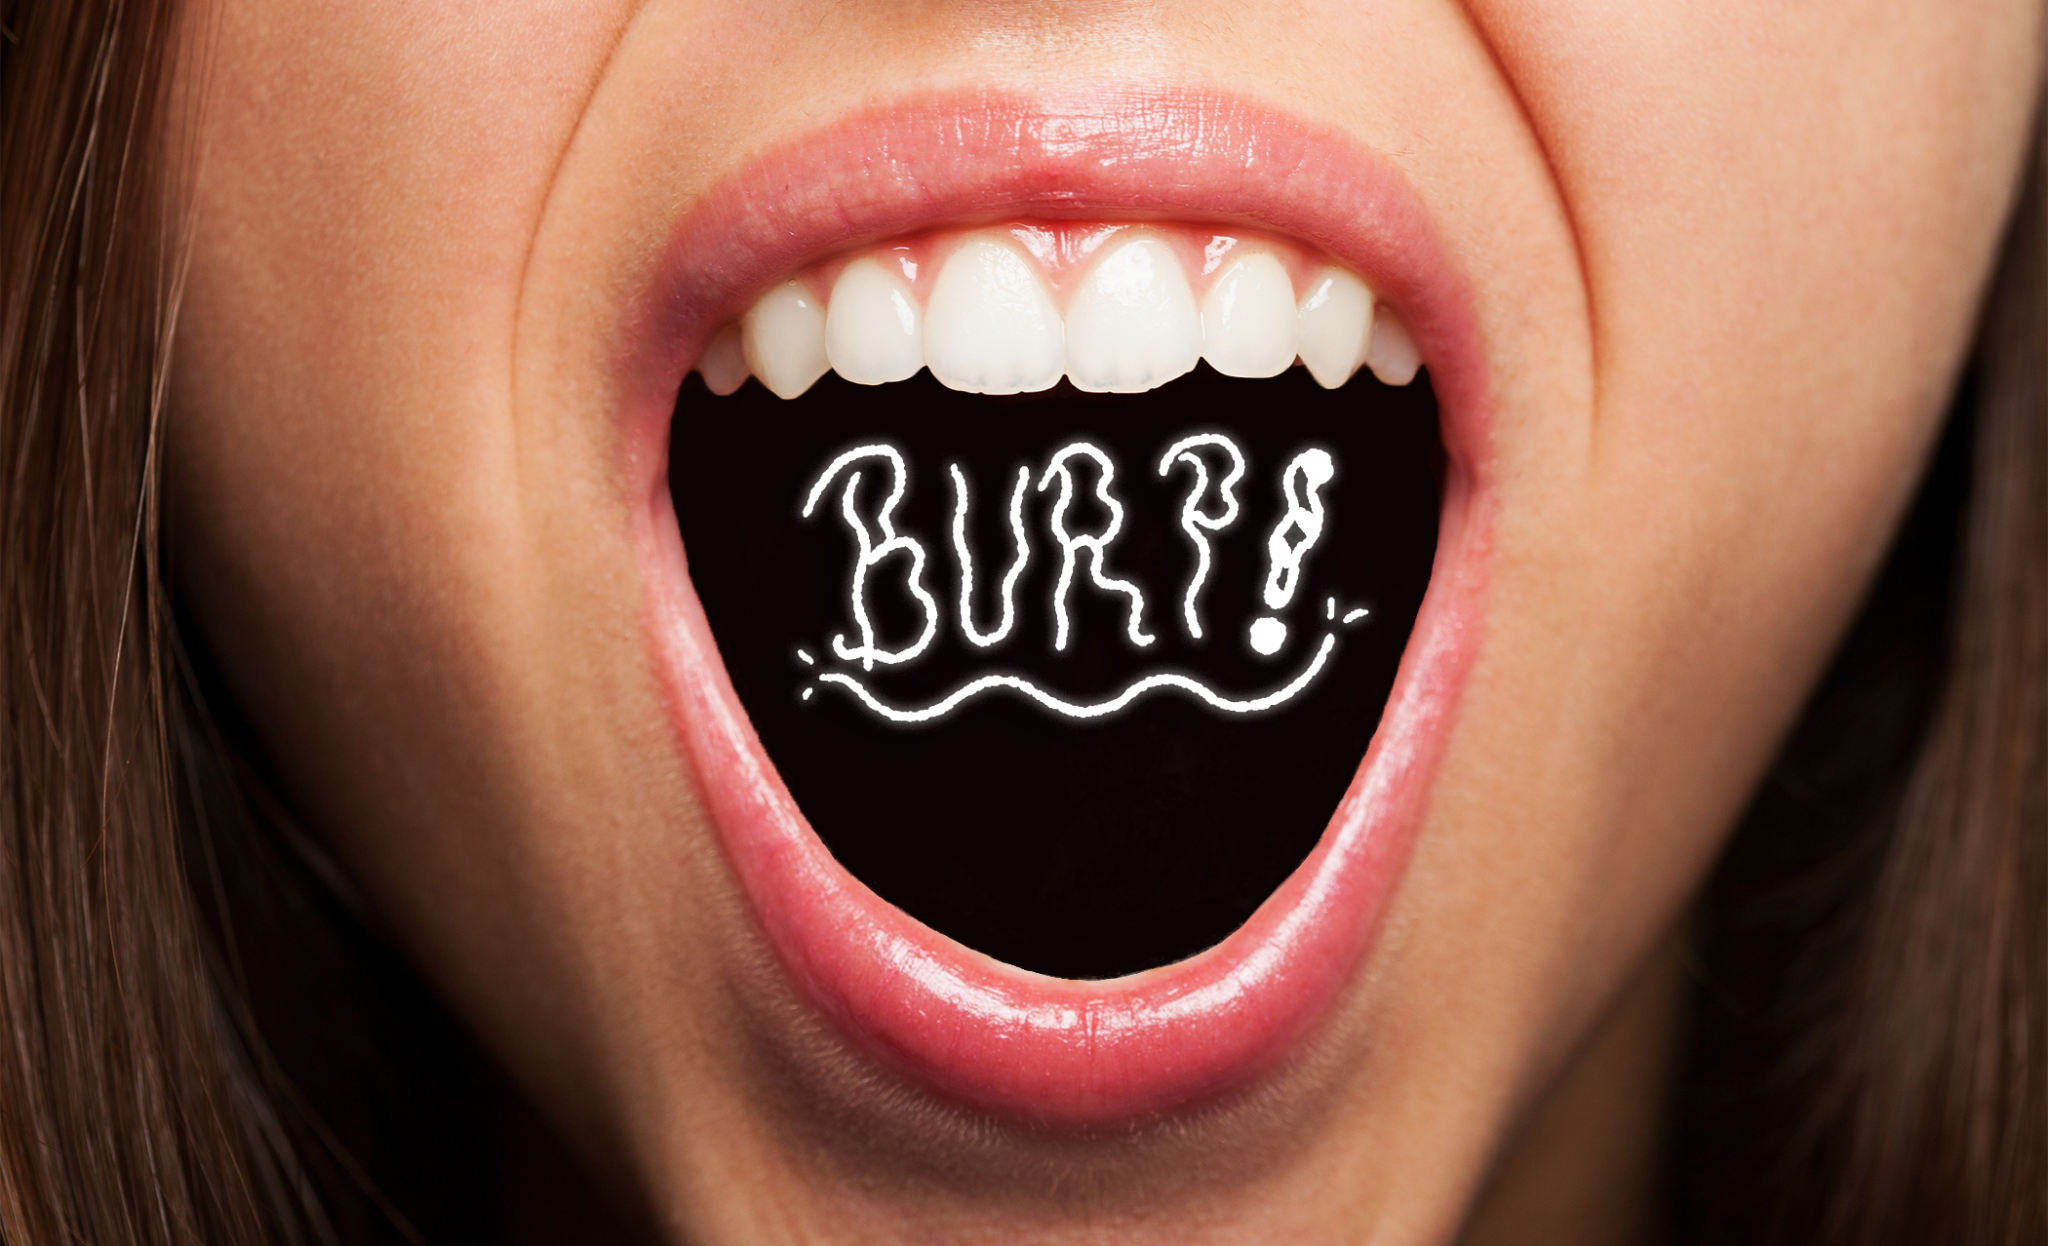 Burping and Belching: How the Hell Do You Make it Stop!?